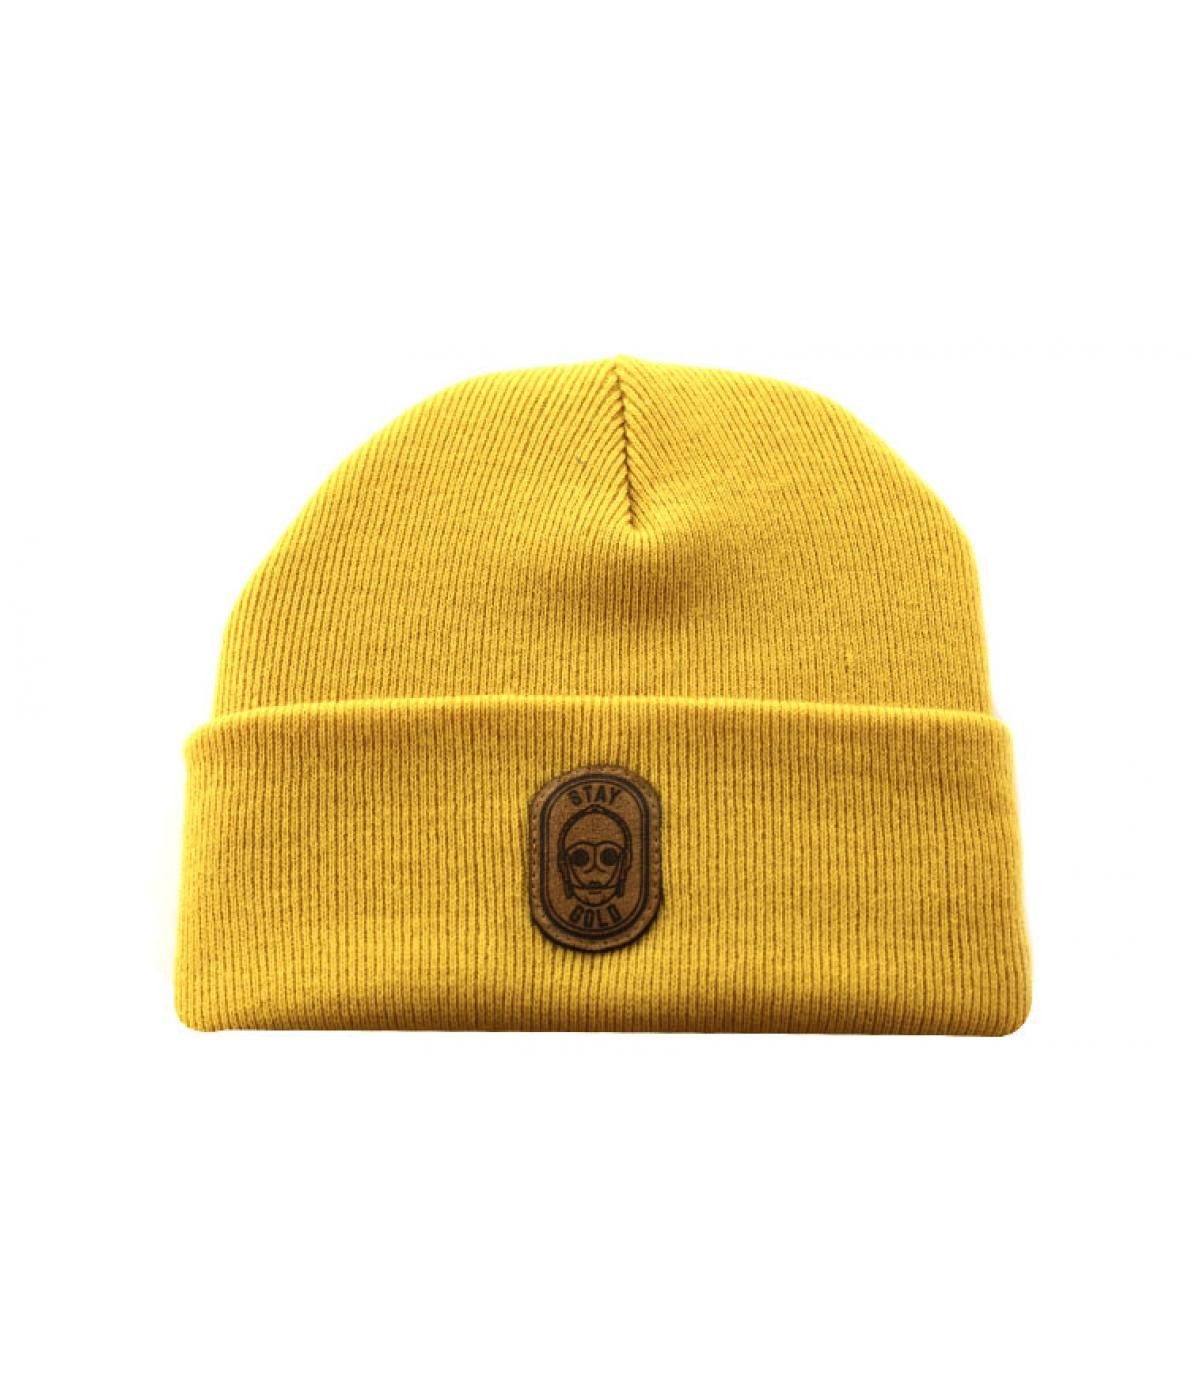 Details Beanie Stay Gold mustard - afbeeling 2